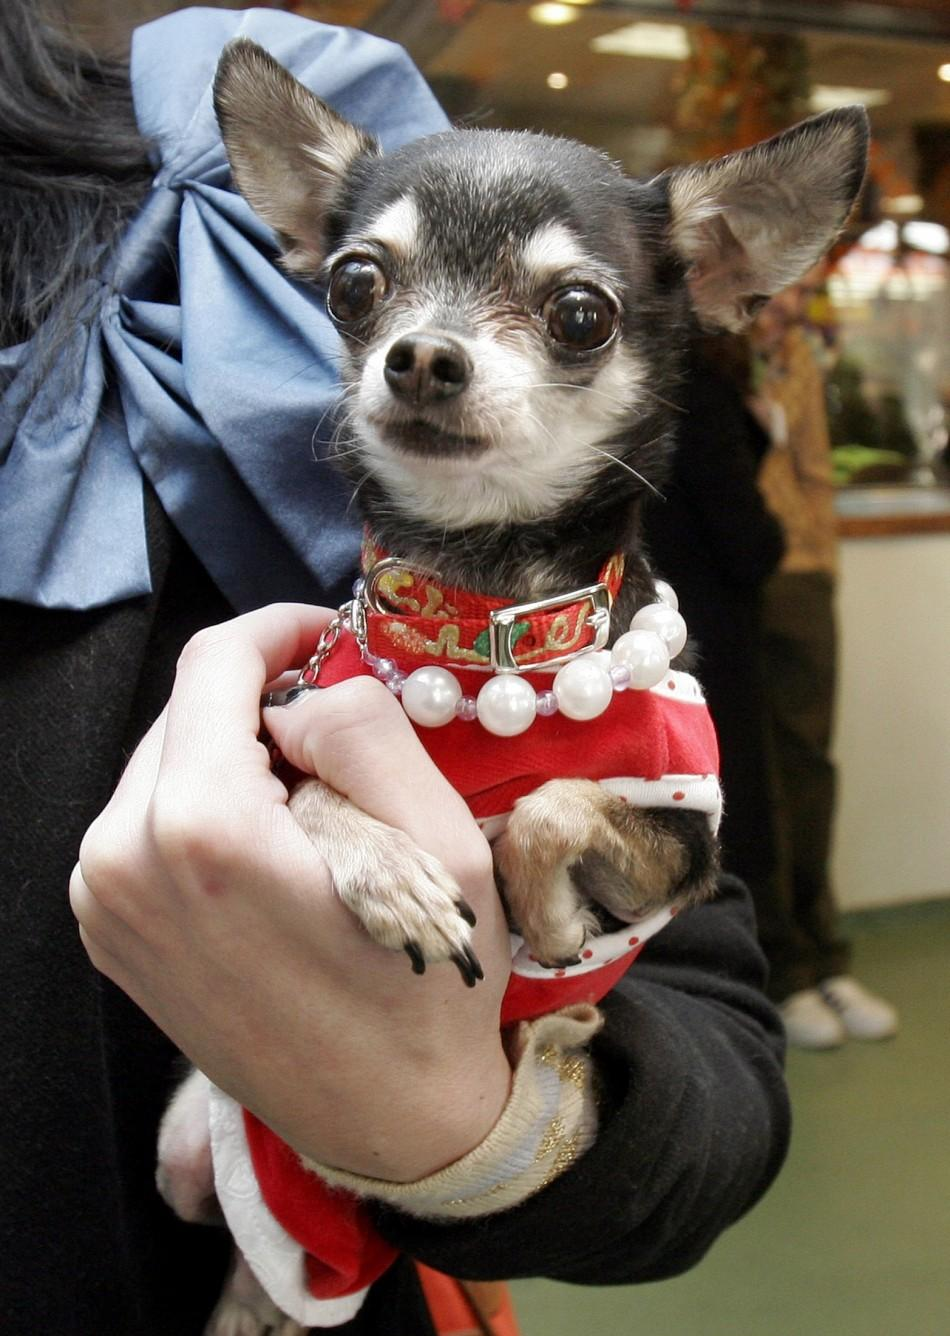 A chihuahua in Santa Claus costume